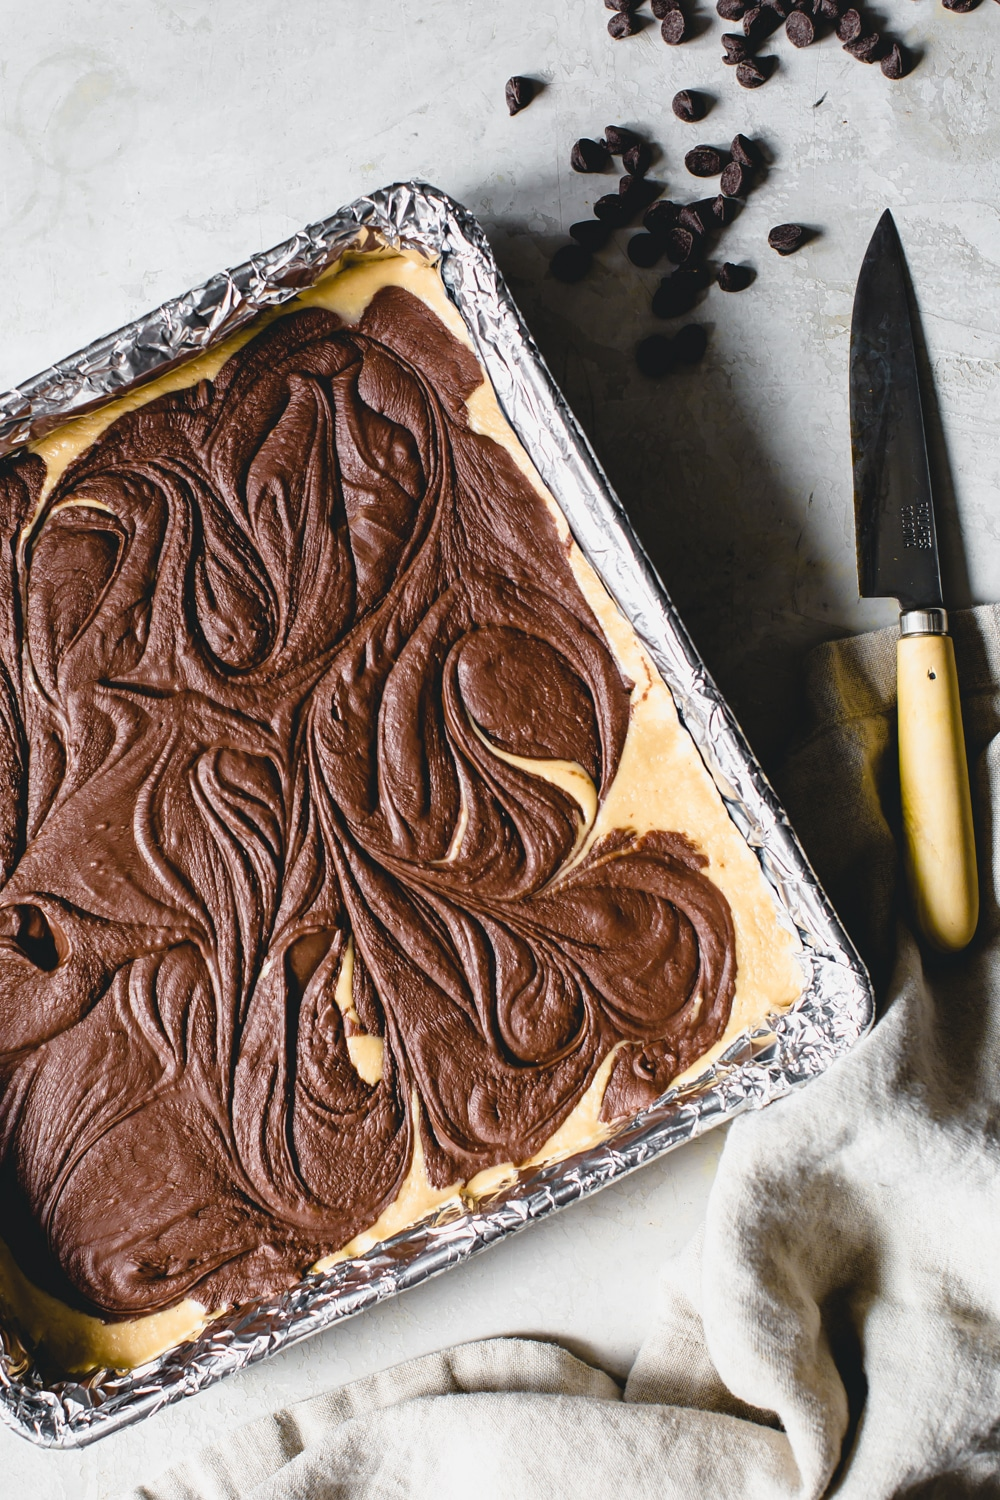 un-cut fudge in a foil wrapped pan with knife